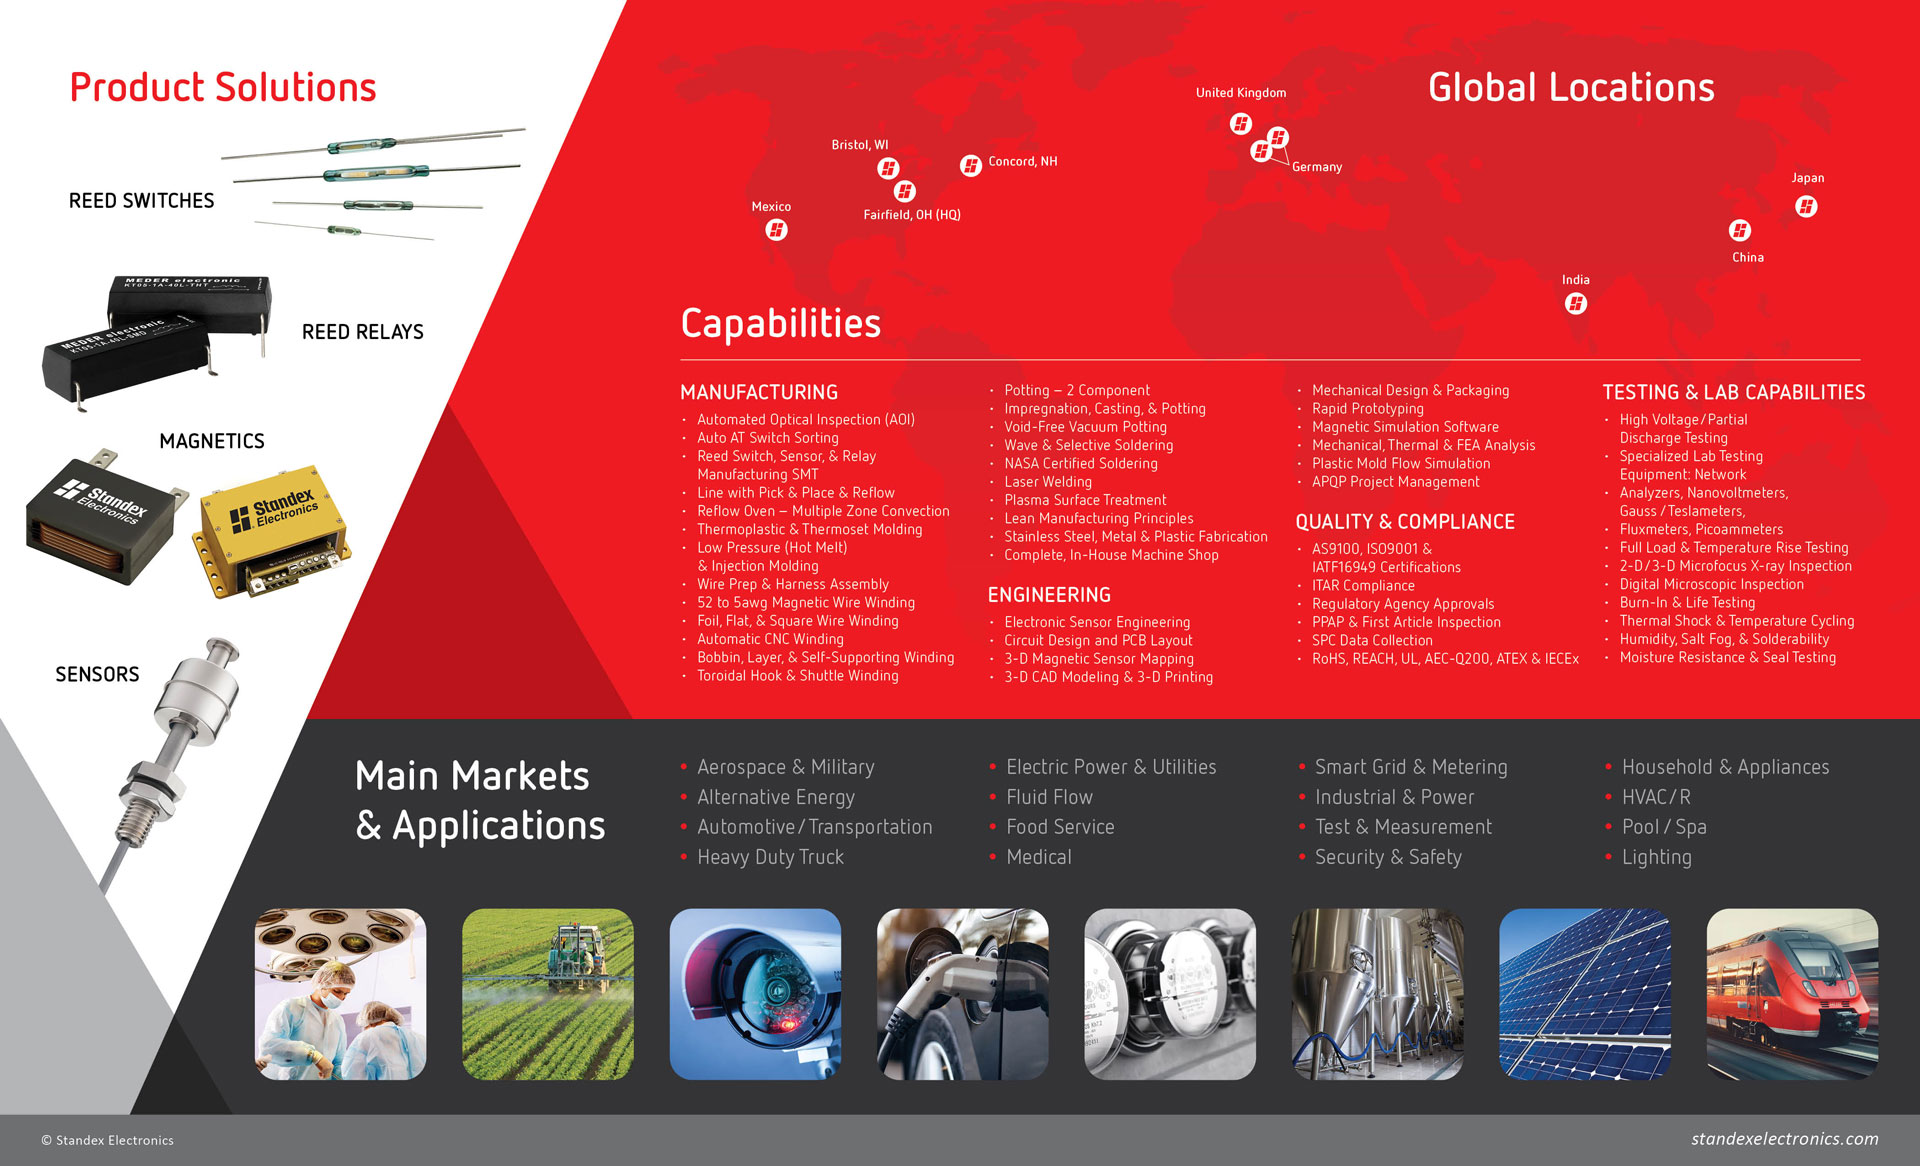 Standex Electronics Company Overview